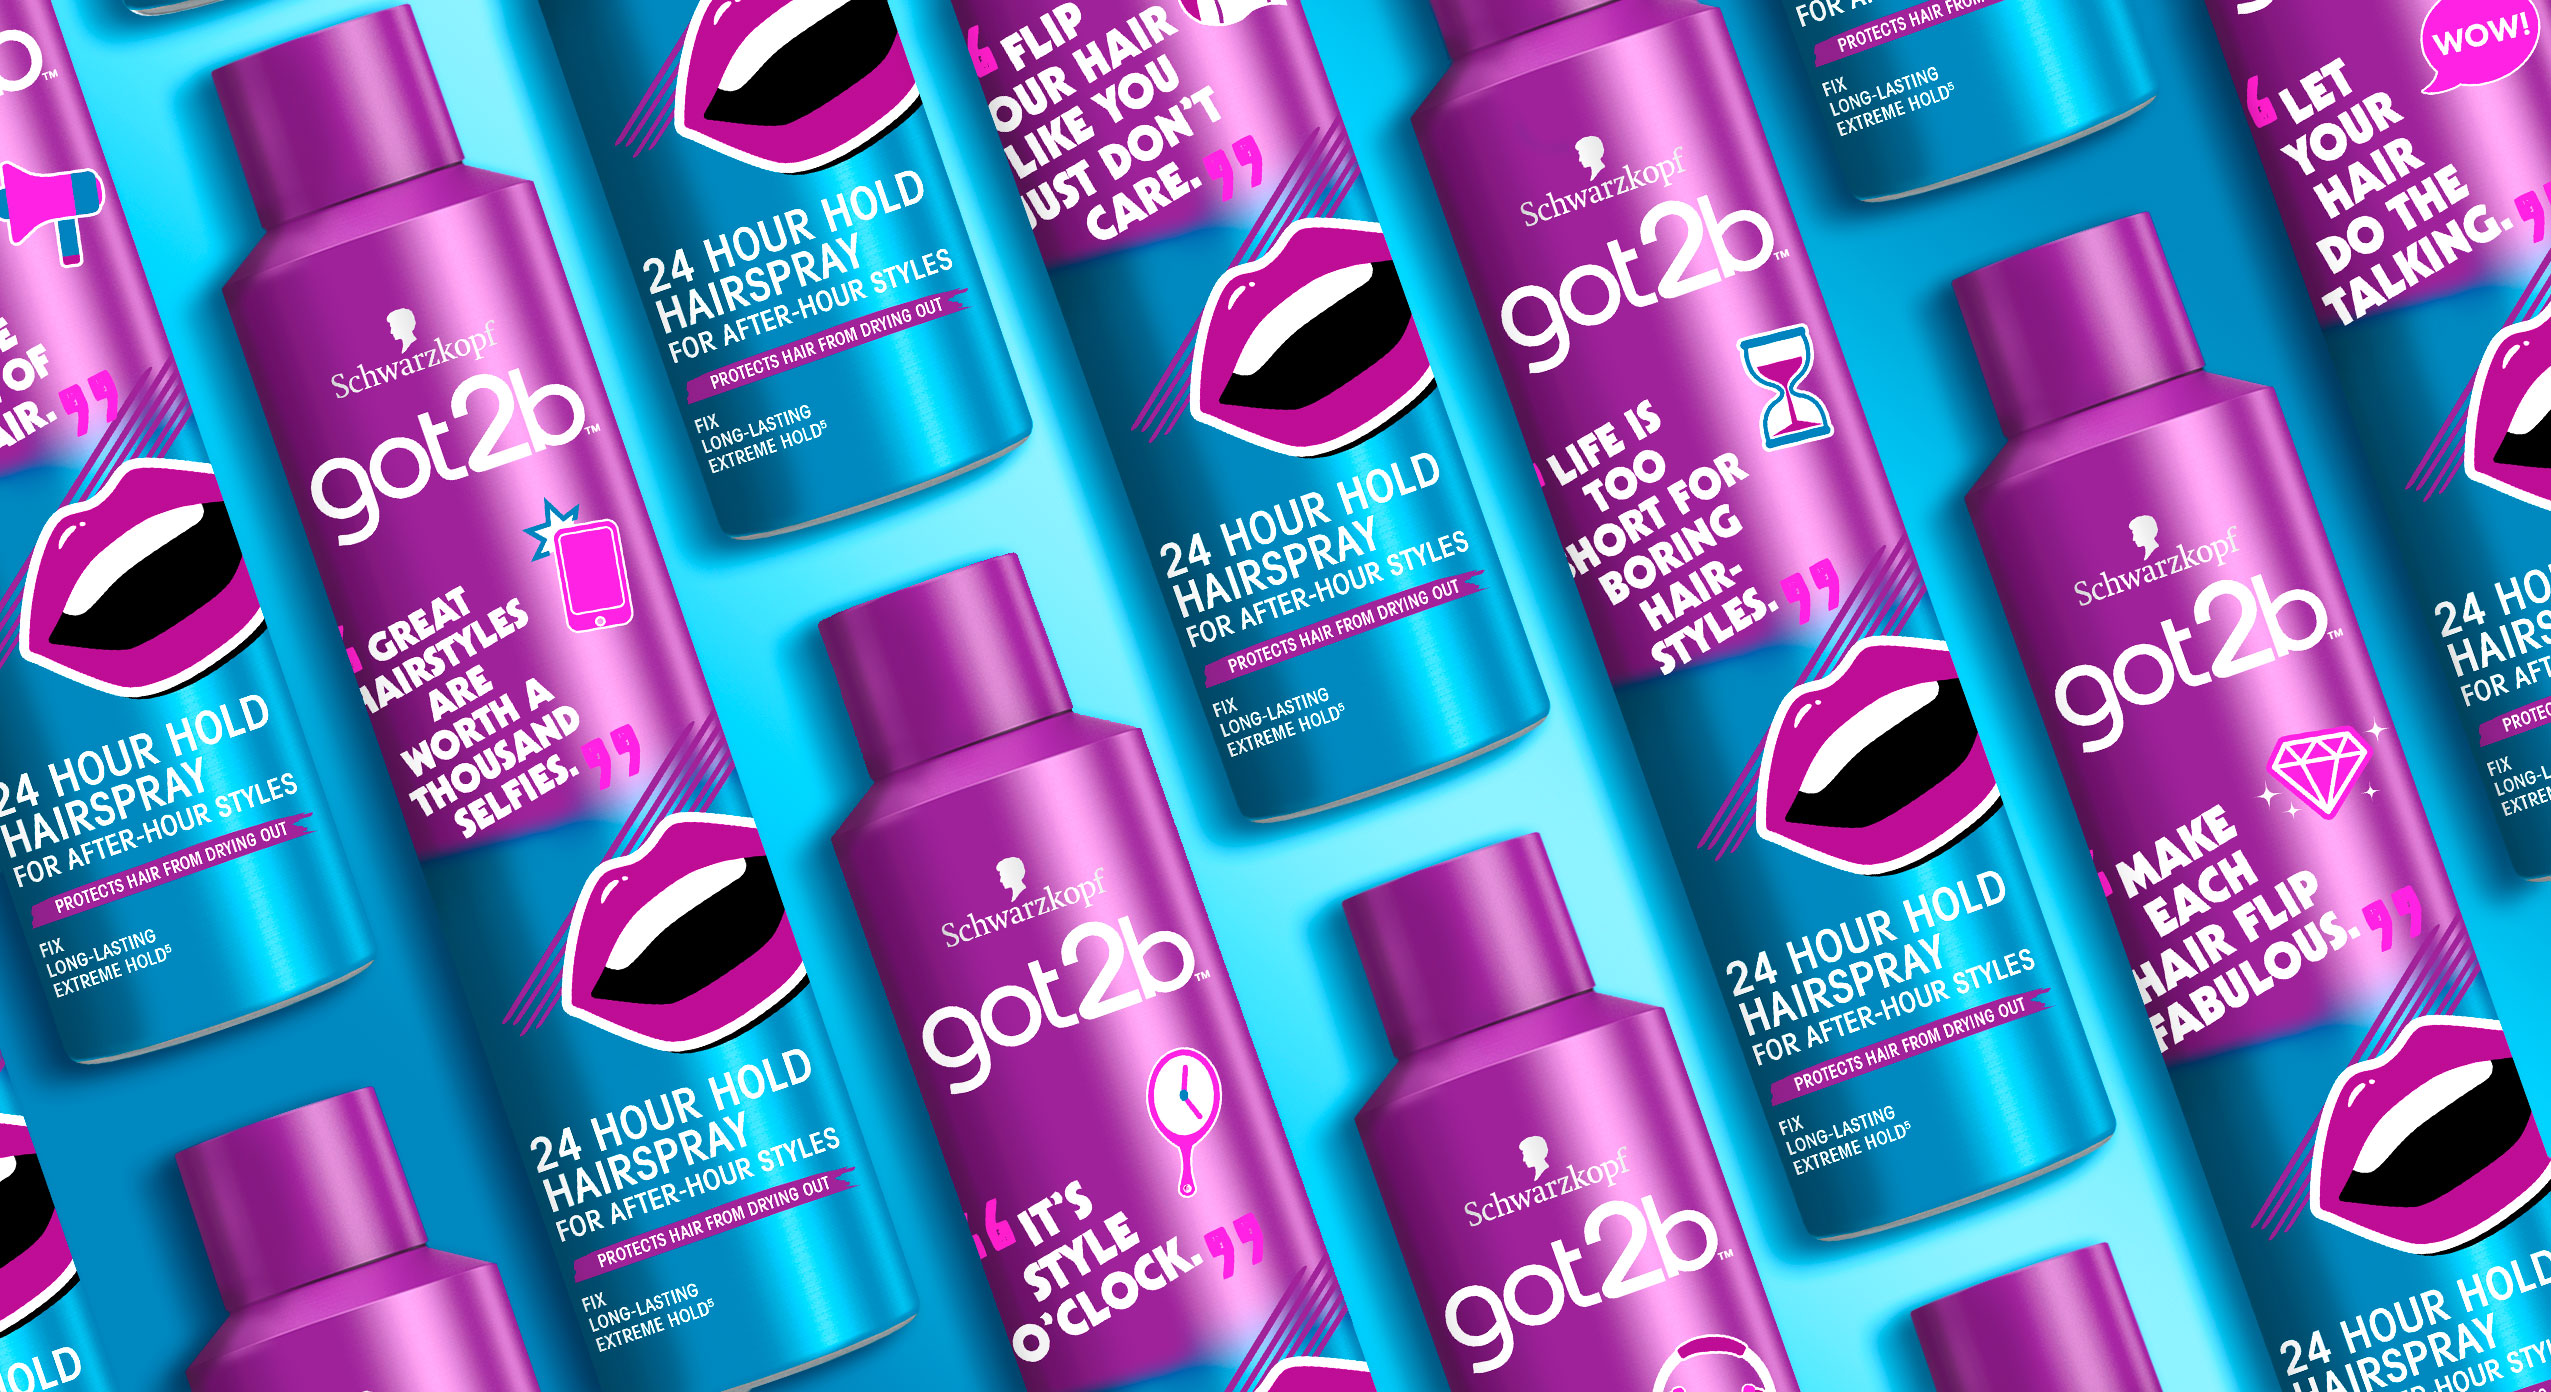 Schwarzkopf Got2b, Happy Hour Hairspray, Limited Edition 2021, packaging design, developed with baries design